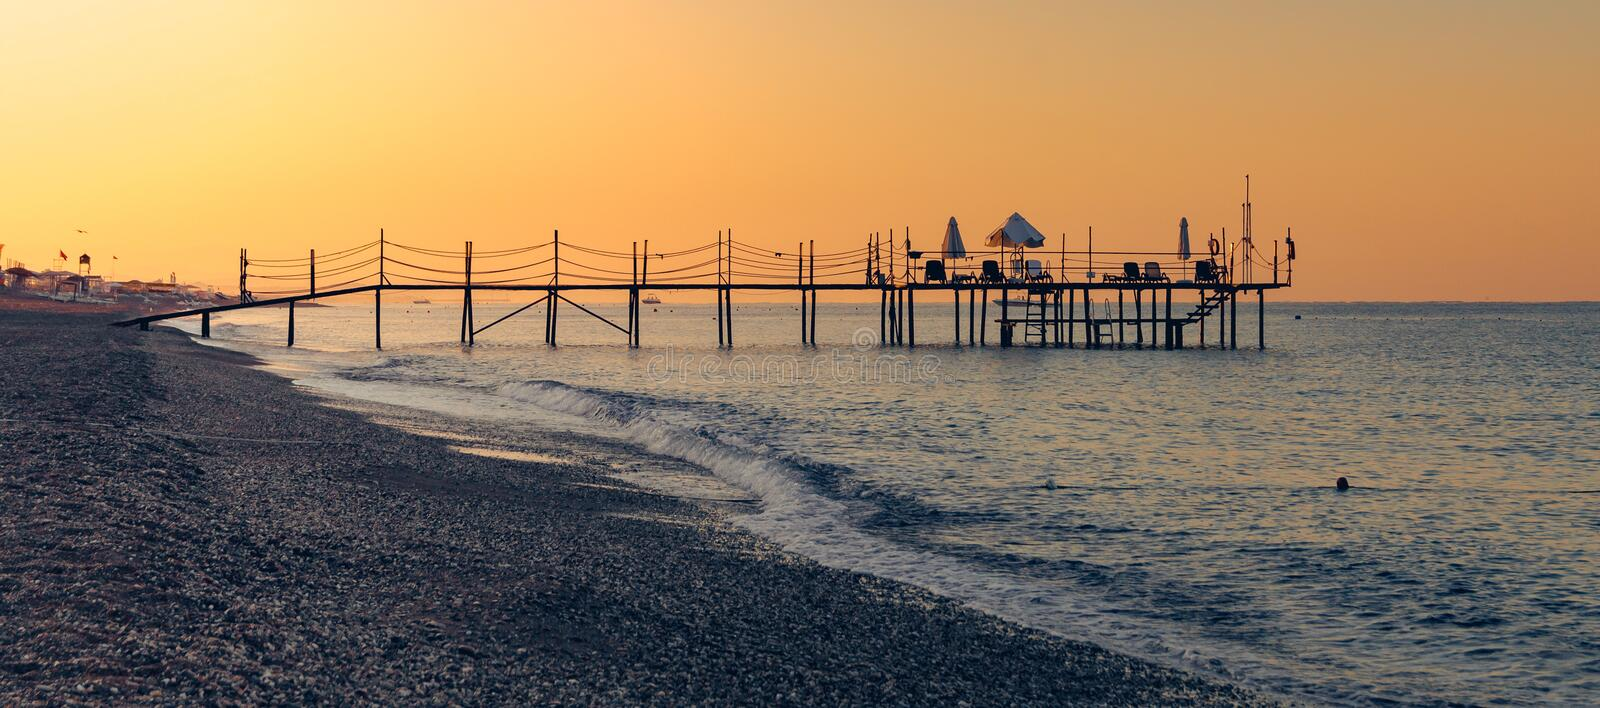 Sunset or sunrise Scene at Tropical Beach Resort with wooden pier royalty free stock photo